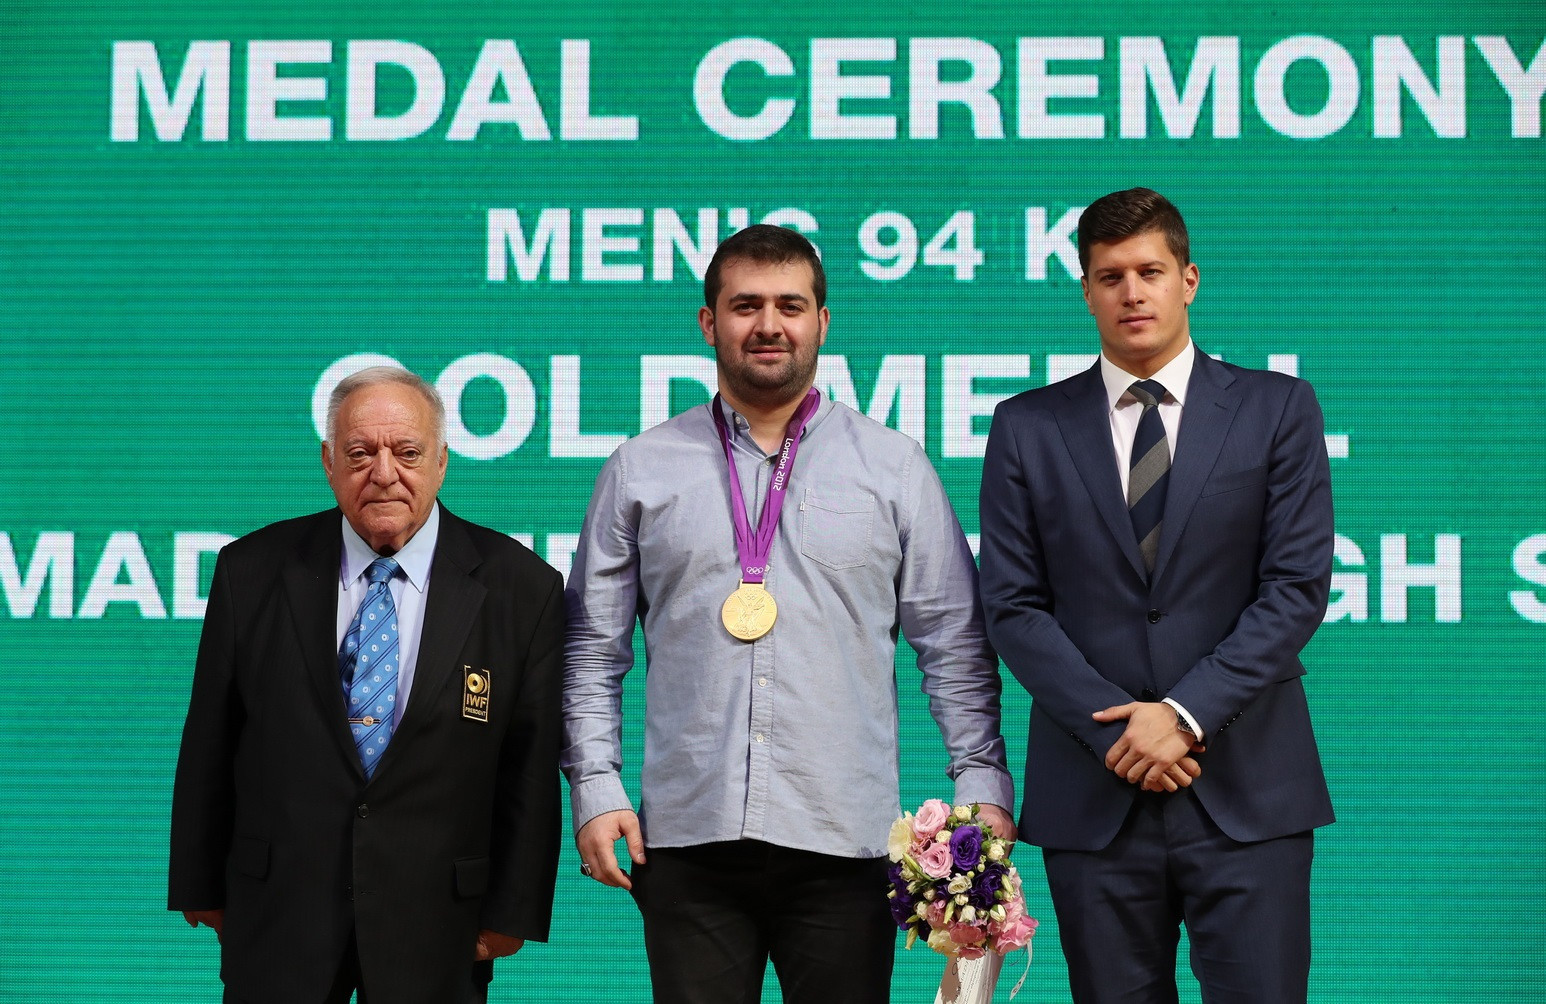 Iran's Saeid Mohammadpour has retrospectively received the gold medal from the notorious men's 94 kilograms weightlifting event at the London 2012 Olympic Games ©IWF